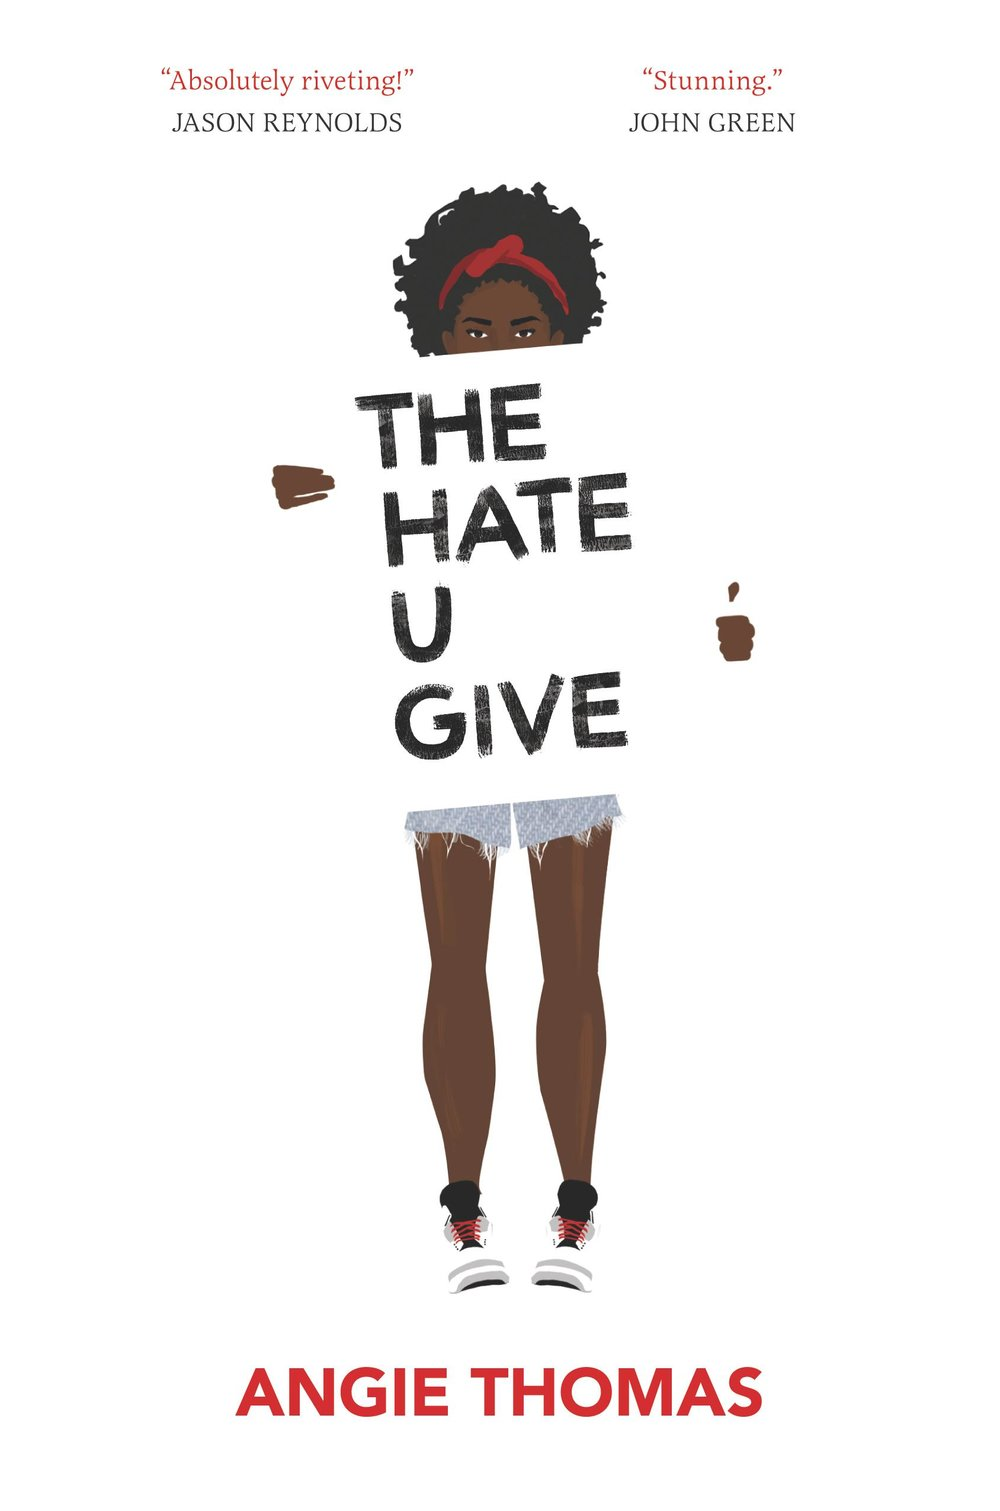 "The Hate You Give is a revolutionary narrative that tackles various social issues  today all stemming from the ugly root that is police brutality. Stemming from police brutality, this novel connects the plight of a low income neighborhood in which gang violence is prevalent, however, the insight this novel gives into the lives of those within this neighborhood makes you fully understand the constant cycle of disenfranchisement leading to crime that is so widespread through these neighborhoods.   Starr Carter is the product of having been brought up in Garden Heights, though she has been a witness to both of her childhood best friends murders, one by drive by when she was 10 and one by cop as a 16 year old, she still manages to find her voice and speak for Khalil as he was silenced senselessly by police brutality.   Starr navigates coping with the loss of the person who knew her before her innocence was stripped by the police shootings, speaking up and testifying in seeking justice for Khalil, dealing with the breakdown of the division between who she is in Garden Heights and who she is at her mainly white affluent school and dealing with threats from the biggest drug dealer in town.   There are many moving parts in this ever-changing narrative that are all products of disenfranchised low income neighborhoods. Every character plays a key role in the storyline, Starr's parents, Big Mav, a former gang banger and Lisa who wants nothing more than to get her family out of Garden Heights represent the cycle that comes out of poverty in low income neighborhoods.   After the shooting the media paints Khalil in a negative light putting more emphasis on the fact that he sold drugs instead of the fact that a police officer killed him in cold blood. Starr made a good point when she said it's like they put Khalil on trial instead of the murderer , like the fact that he was a drug dealer makes him any less of a person with a life, a family and a story. Starr's voice is a force as she becomes an activist facing the media and painting Khalil as she knew him, the uncorrupt Khalil who did nothing wrong.  These ill fated grievances all to familiar like those of Trayvon Martin, Antwon Rose and Tamir Rice, all teens whose lives have been taken by those who are supposed to protect us. All of which had no justice while murderers walk free. Why would this case with Khalil be any different.    This narrative dutifully portrays what happens time and time again when young black males in this age group are brutalized and harassed by the police. The media always, without fail find something, anything to dig up to demonize the victim. Whatever these children did in the past doesn't matter. What matters is the life that was stripped from them, the innocence taken from them, they're light stolen from them.   Symbolism evveloped its pages that made it even more riveting, even the title has a hidden meaning derived from Tupac Shakurs' belief in THUG LIFE, which can be seen through multiple lenses, as a reckless lifestyle or as Tupac believed THUG LIFE means ""The Hate U Give Little Infants F--ks Everyone"". This anagram becomes a theme throughput the novel because, as Khalil put it, ""what society gives us comes back to bite them in the ass when we wild out"". Which is exactly what happens in Garden Heights as a result of Khalil's murder, the community has been force fed police brutality and injustice for years and now is being brought to light and the community has had enough and is fighting back in Khalil's name. Perhaps ""roses growing from concrete"" is among my favorite metaphor representing the characters.   This book spoke to me and made me see a new perspective that many people in low income communities get involved in a world of crime in order to make money because they're are no proper jobs in the neighborhood that can help to feed a family, the schools in the neighborhood set these children up for failure, and many of the teens have terrible role models and those who do have success have gained it through gang-banging. The life choices that people in low income communities have to make in order to survive and have a glimpse of success.   The Hate U Give is a book that transcends all walks of life, I think everyone needs to read this. to catch a glimpse and really understand where the other side is coming from. I truly believe that if more people today read this book there would be less bigots in this world that are okay with seeing the injustice unfold in the world we live in."